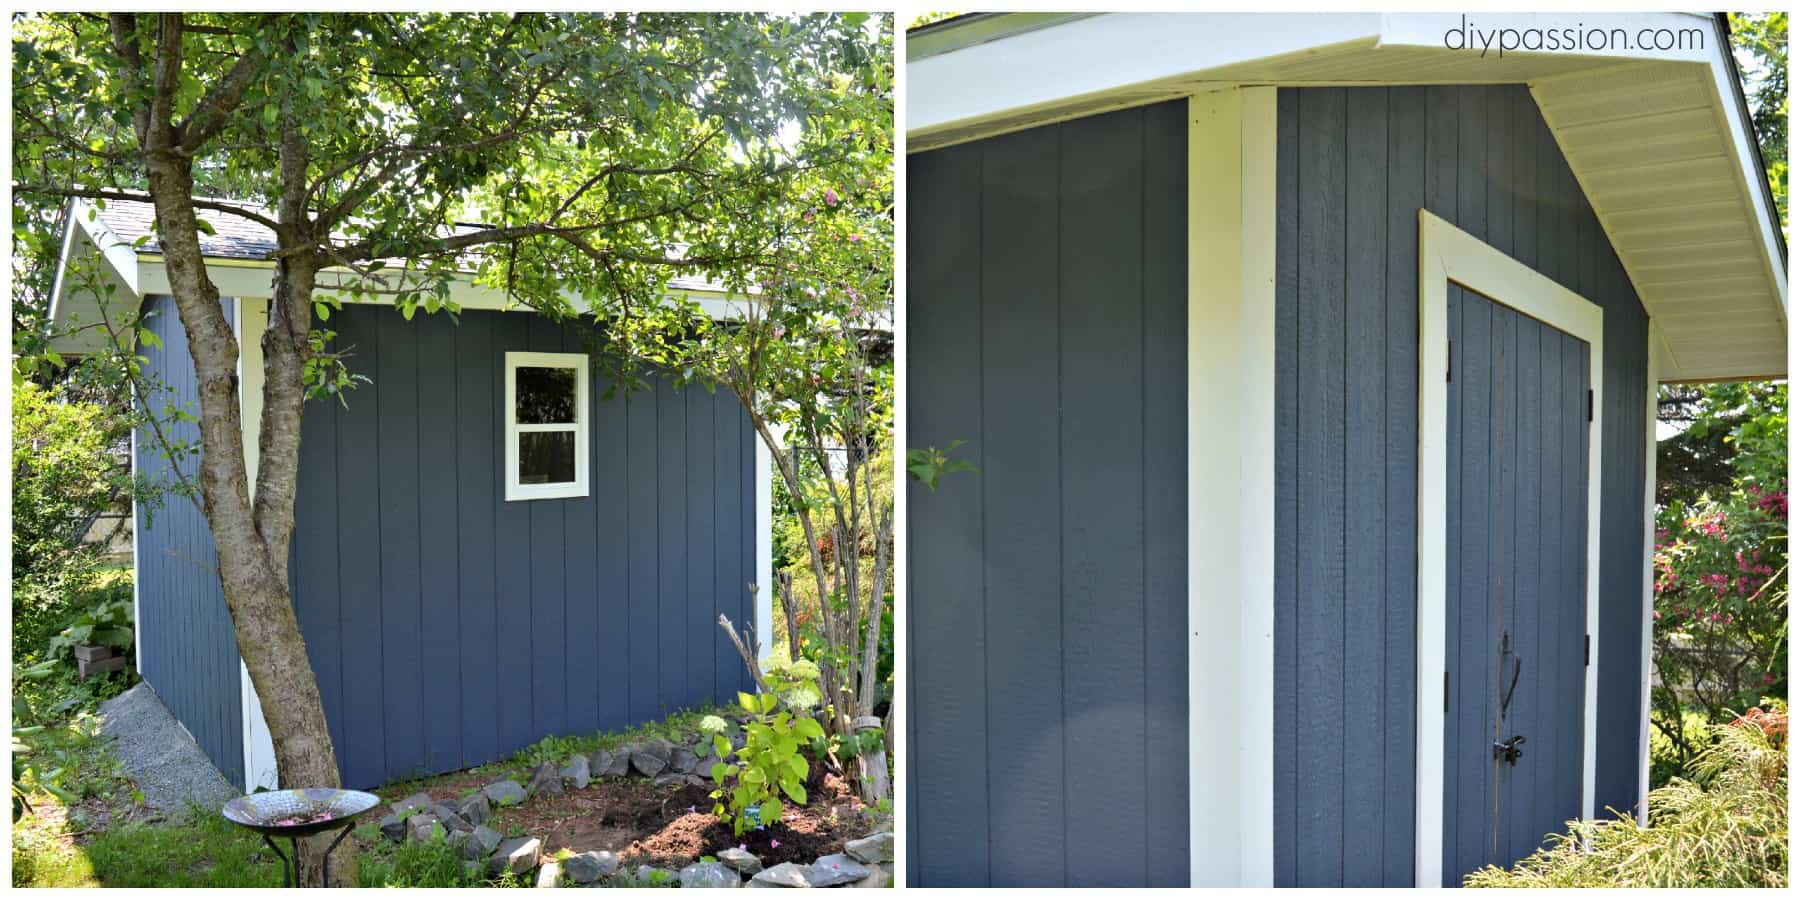 how to paint your shed the right way diy passion. Black Bedroom Furniture Sets. Home Design Ideas